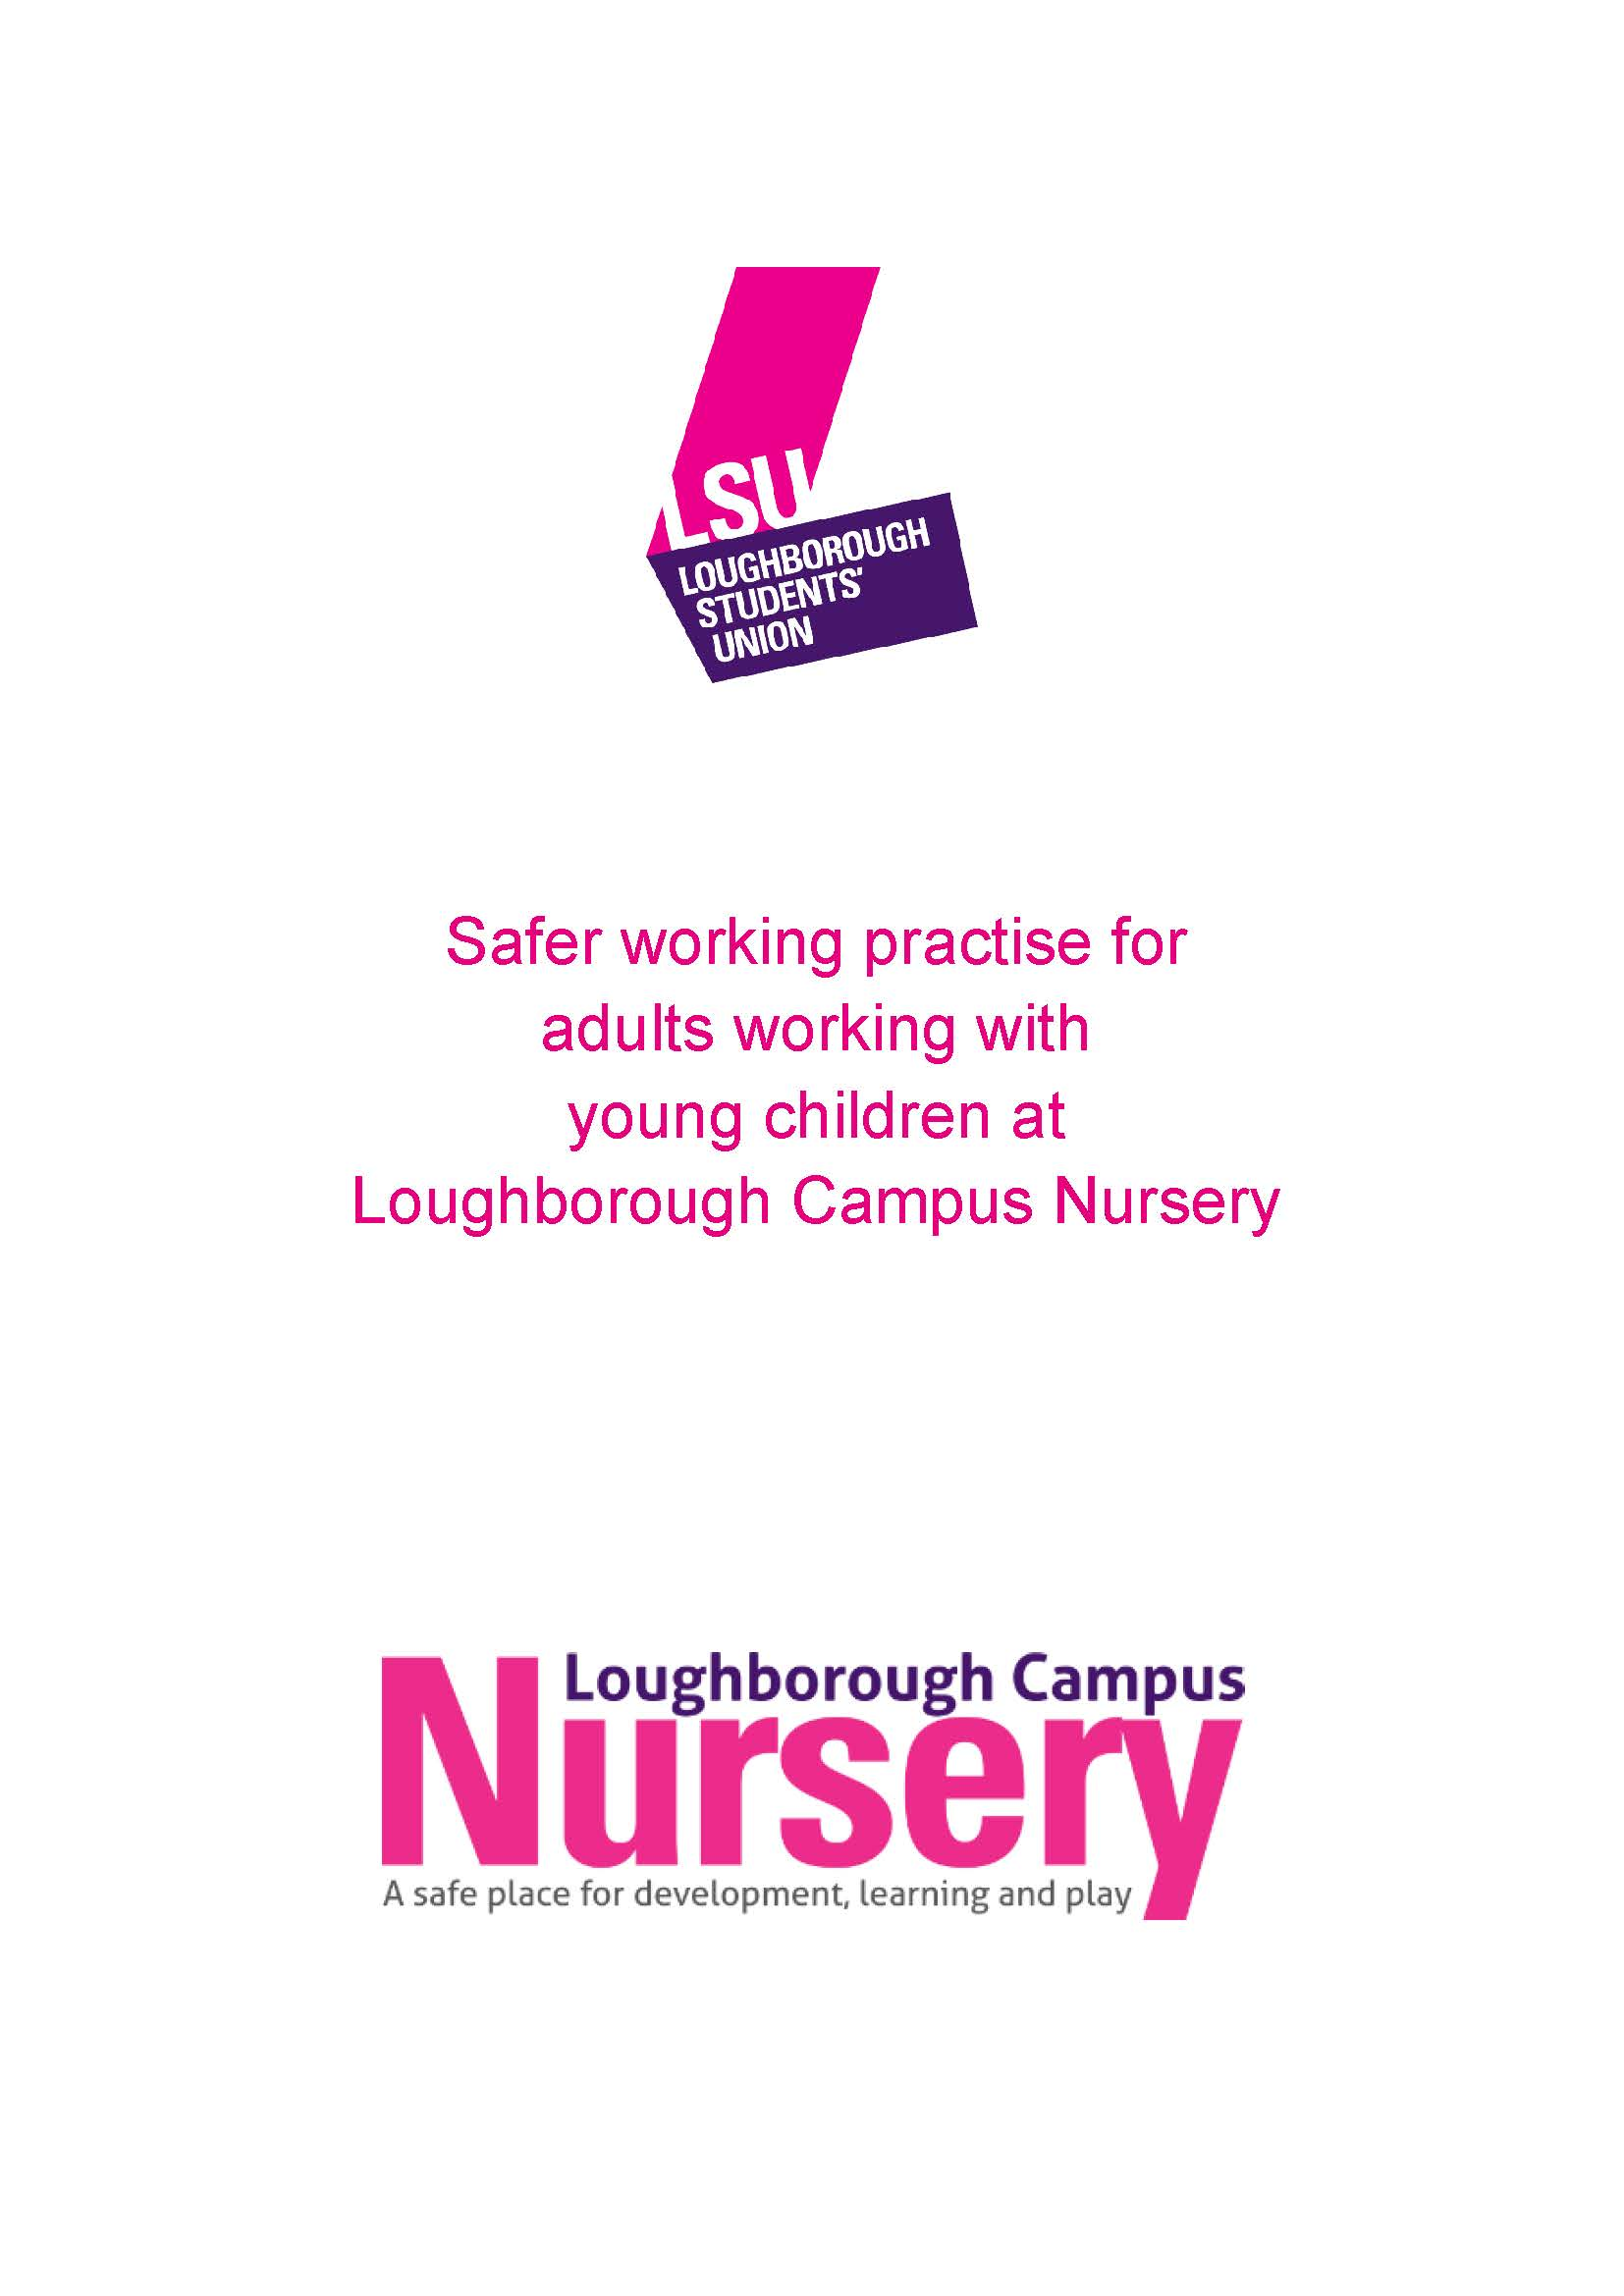 Safer working practise for adults working with young children